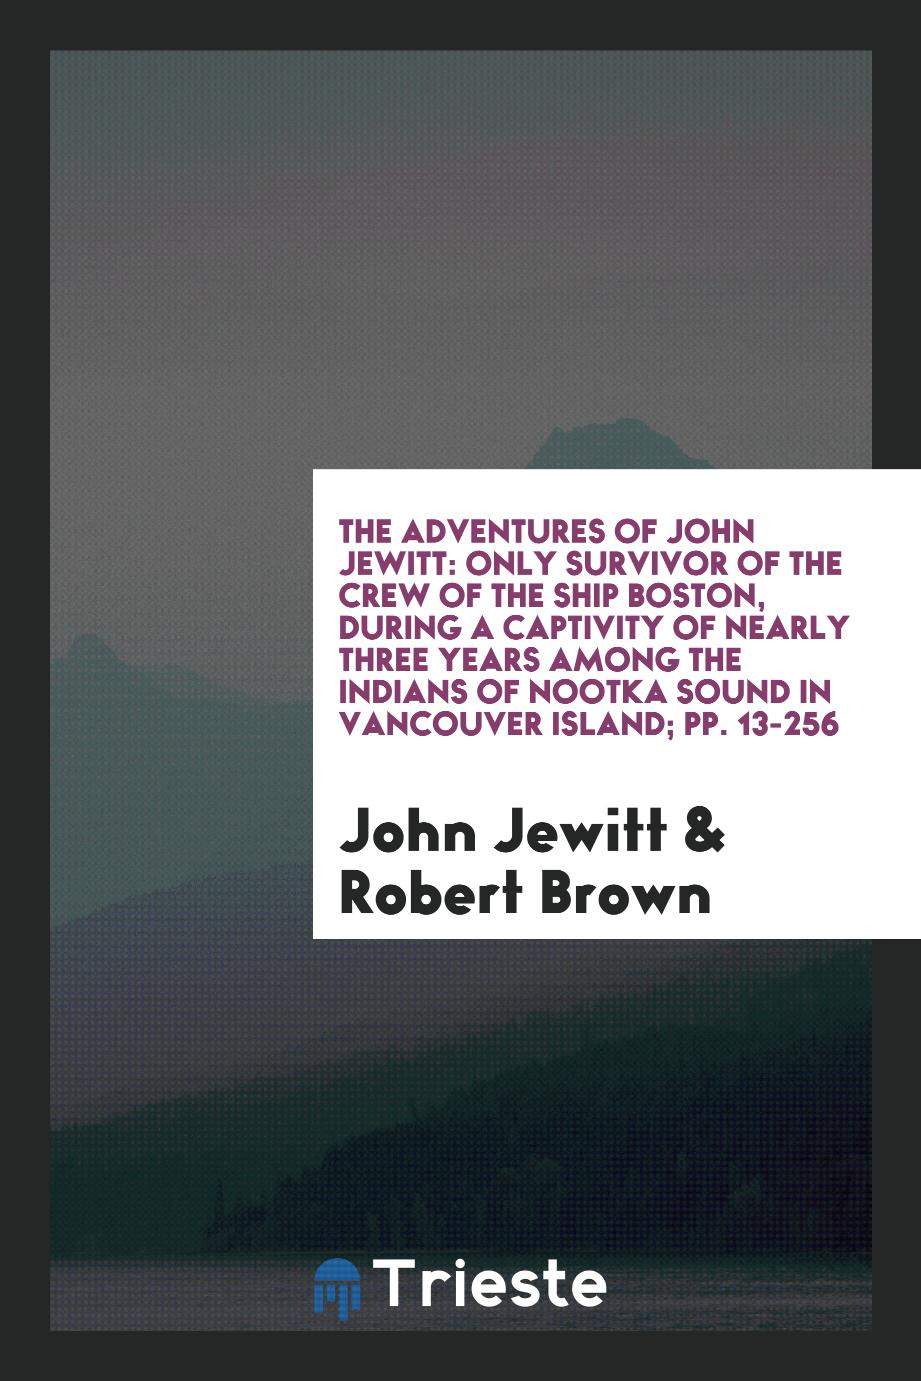 The Adventures of John Jewitt: Only Survivor of the Crew of the Ship Boston, During a Captivity of Nearly Three Years Among the Indians of Nootka Sound in Vancouver Island; pp. 13-256